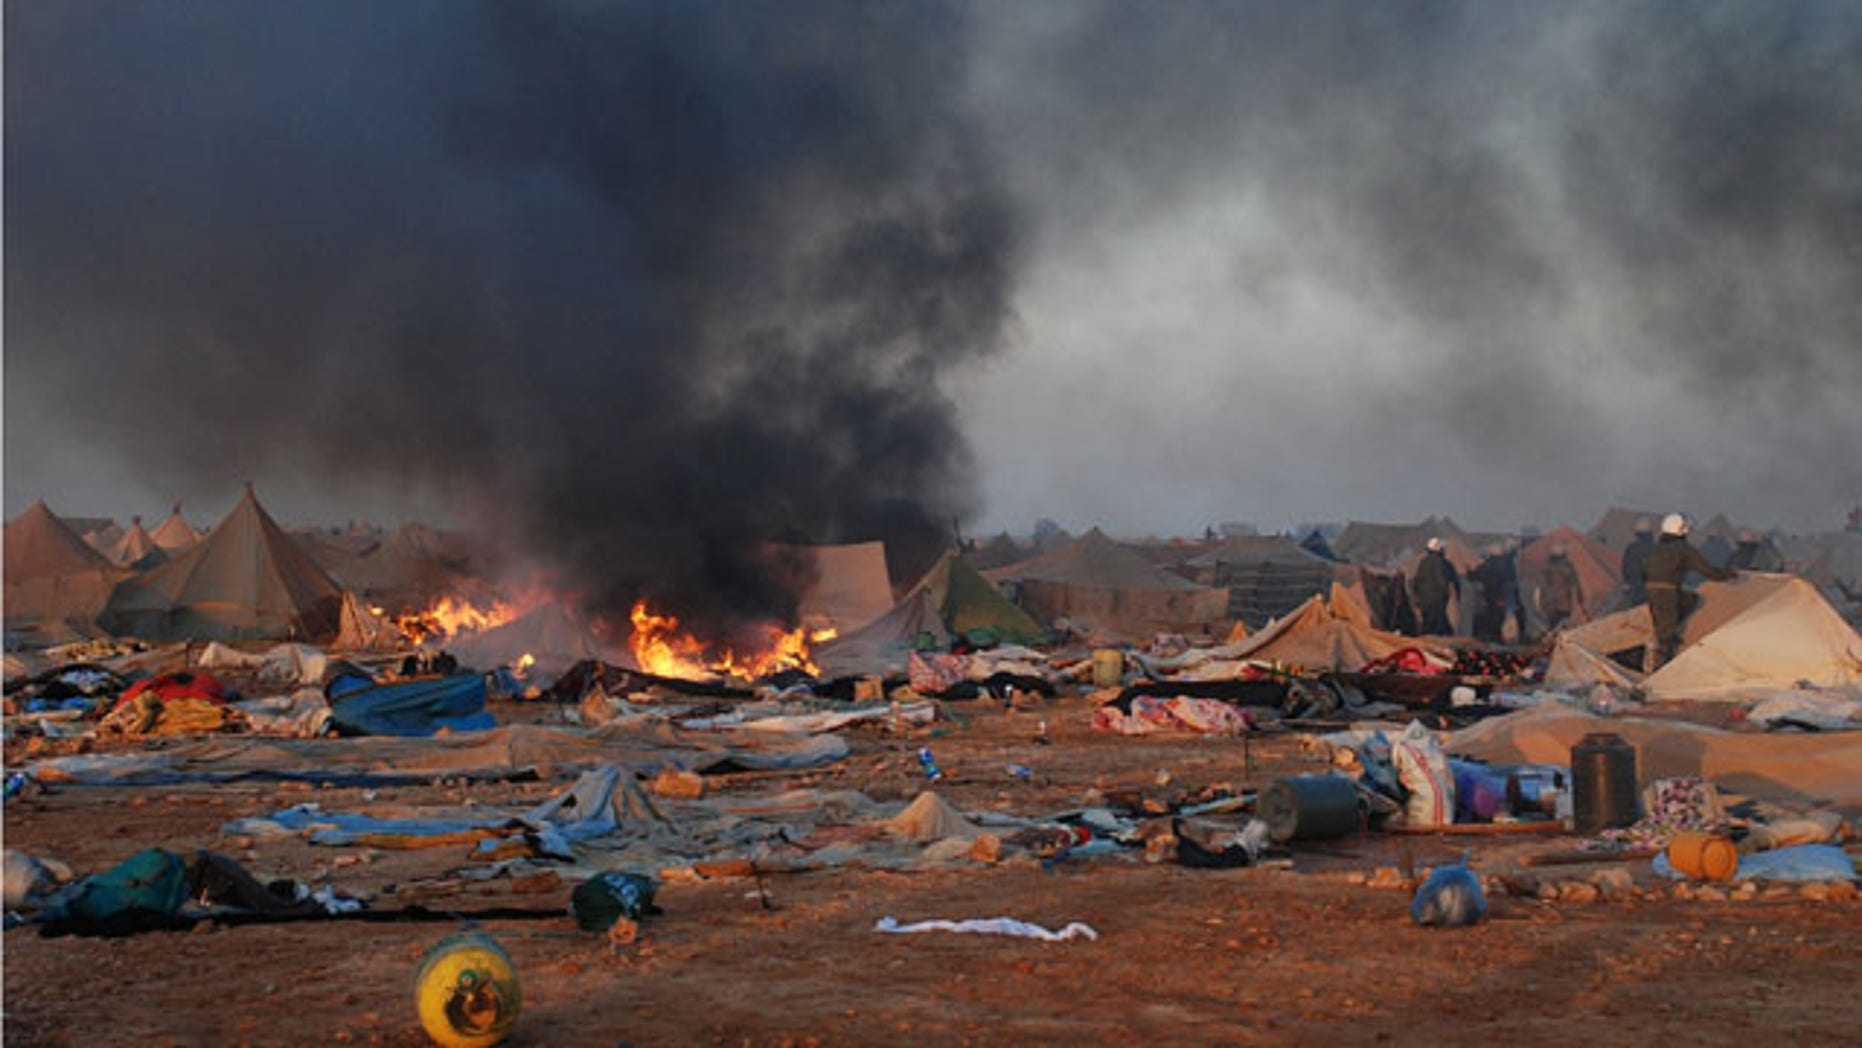 Nov. 8: Moroccan forces dismantle a camp housing thousands of refugees in the Western Sahara, near Laayoune. At least three Moroccan security officials were killed and 70 injured in a raid on a protest camp in the disputed territory of Western Sahara.